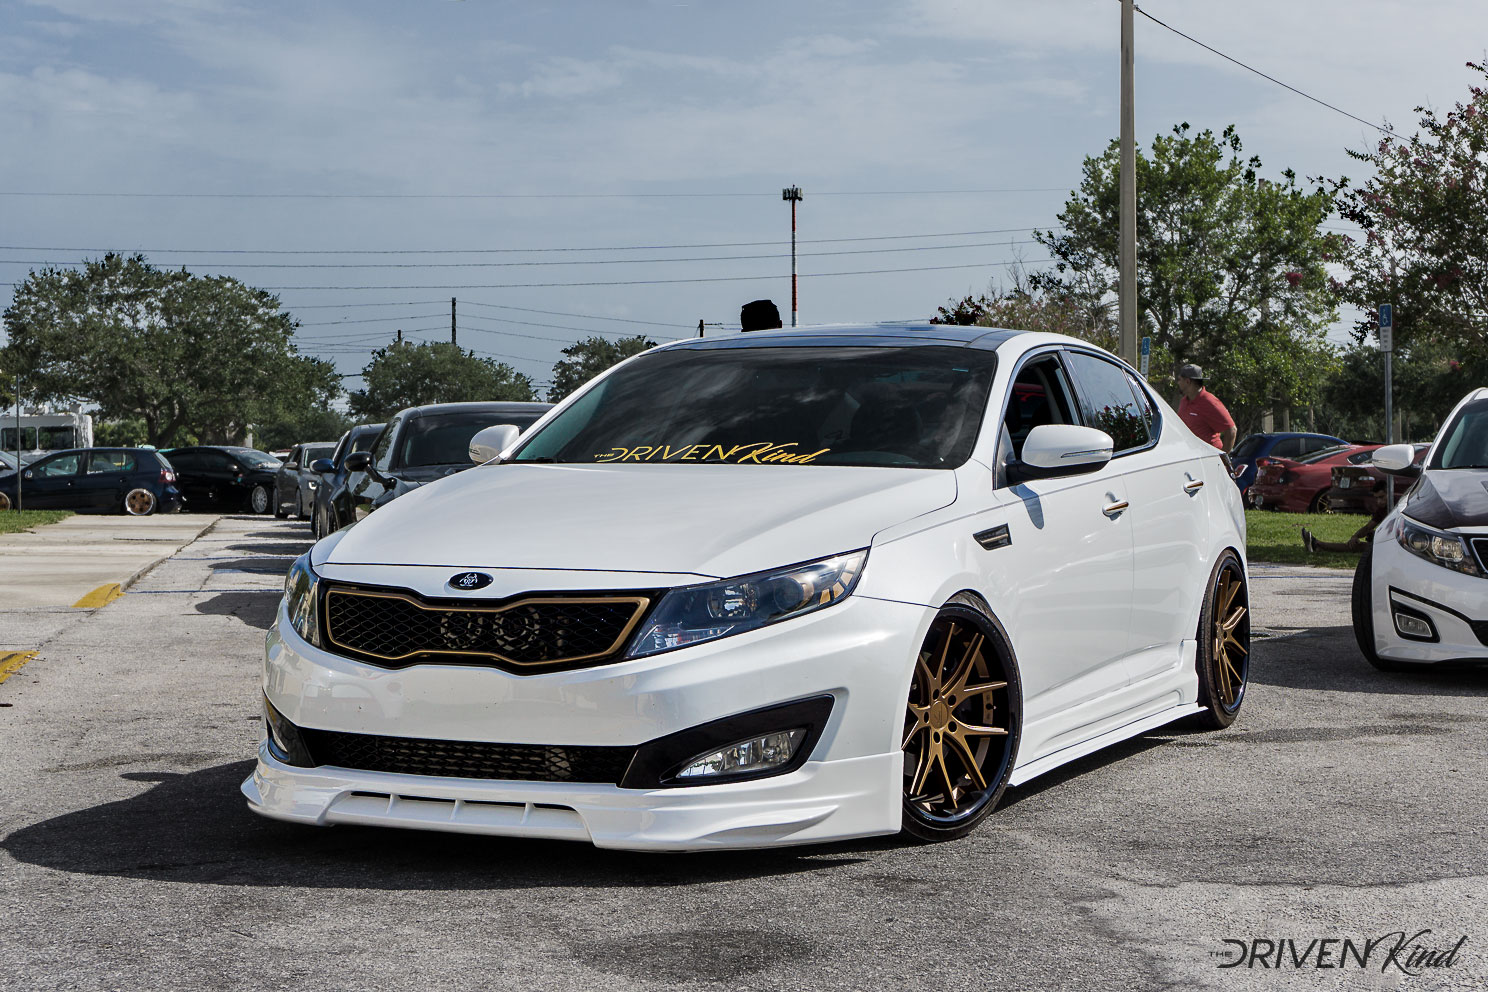 Kia Optima Daily Driven Inc. Presents Florida's Finest Melbourne FL Auditorium coverage by The Driven Kind